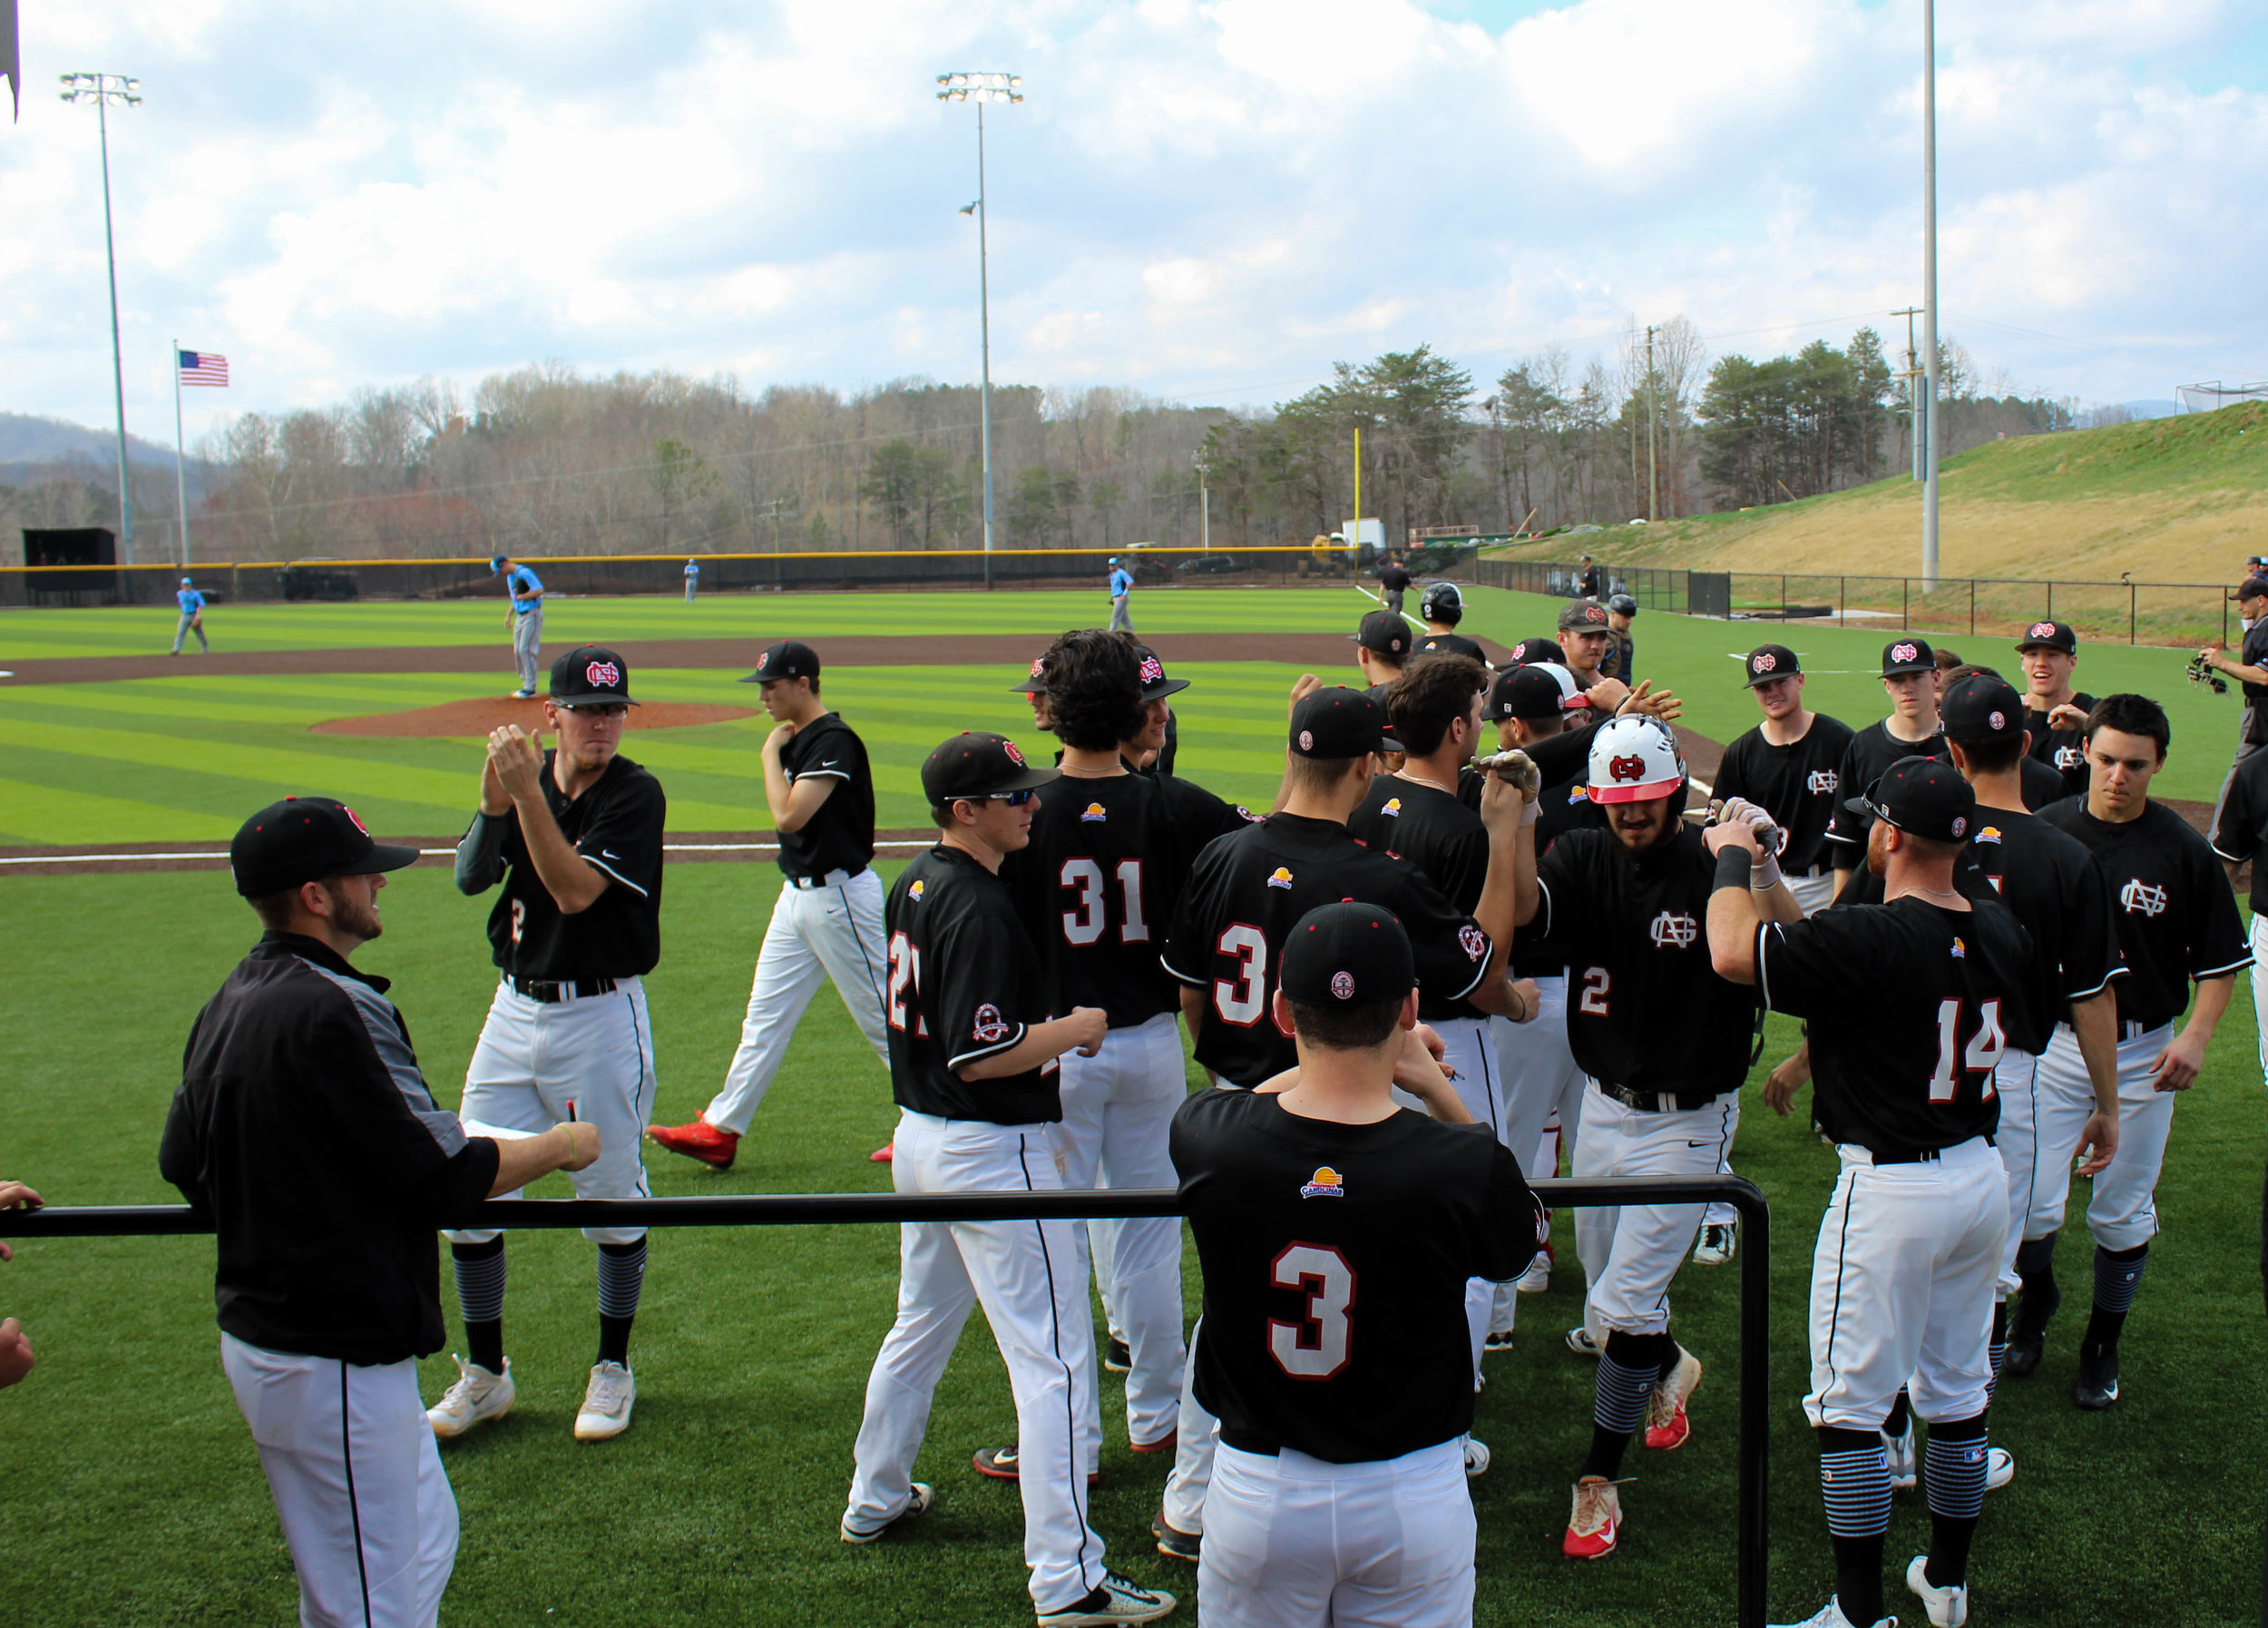 The NGU Men's Baseball team cheer on Utah Jones (2) after hitting a home run.